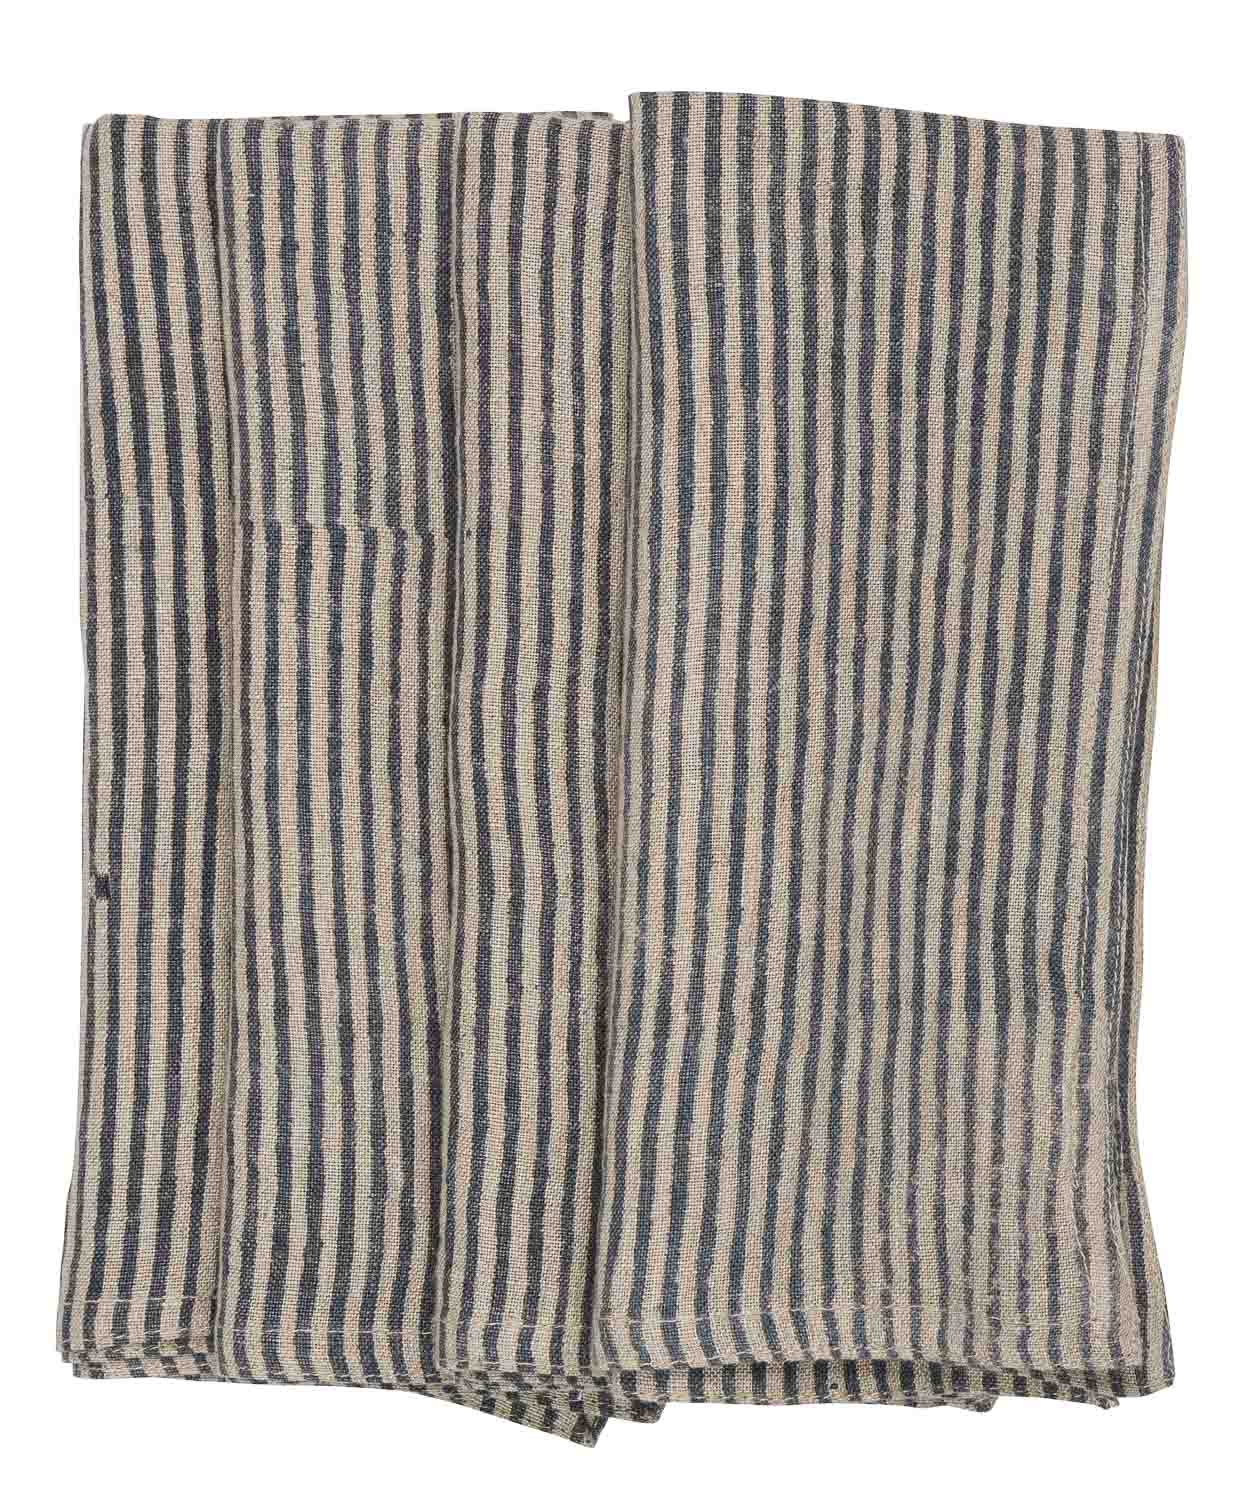 Linen Napkins - Stripe - Dark Blue